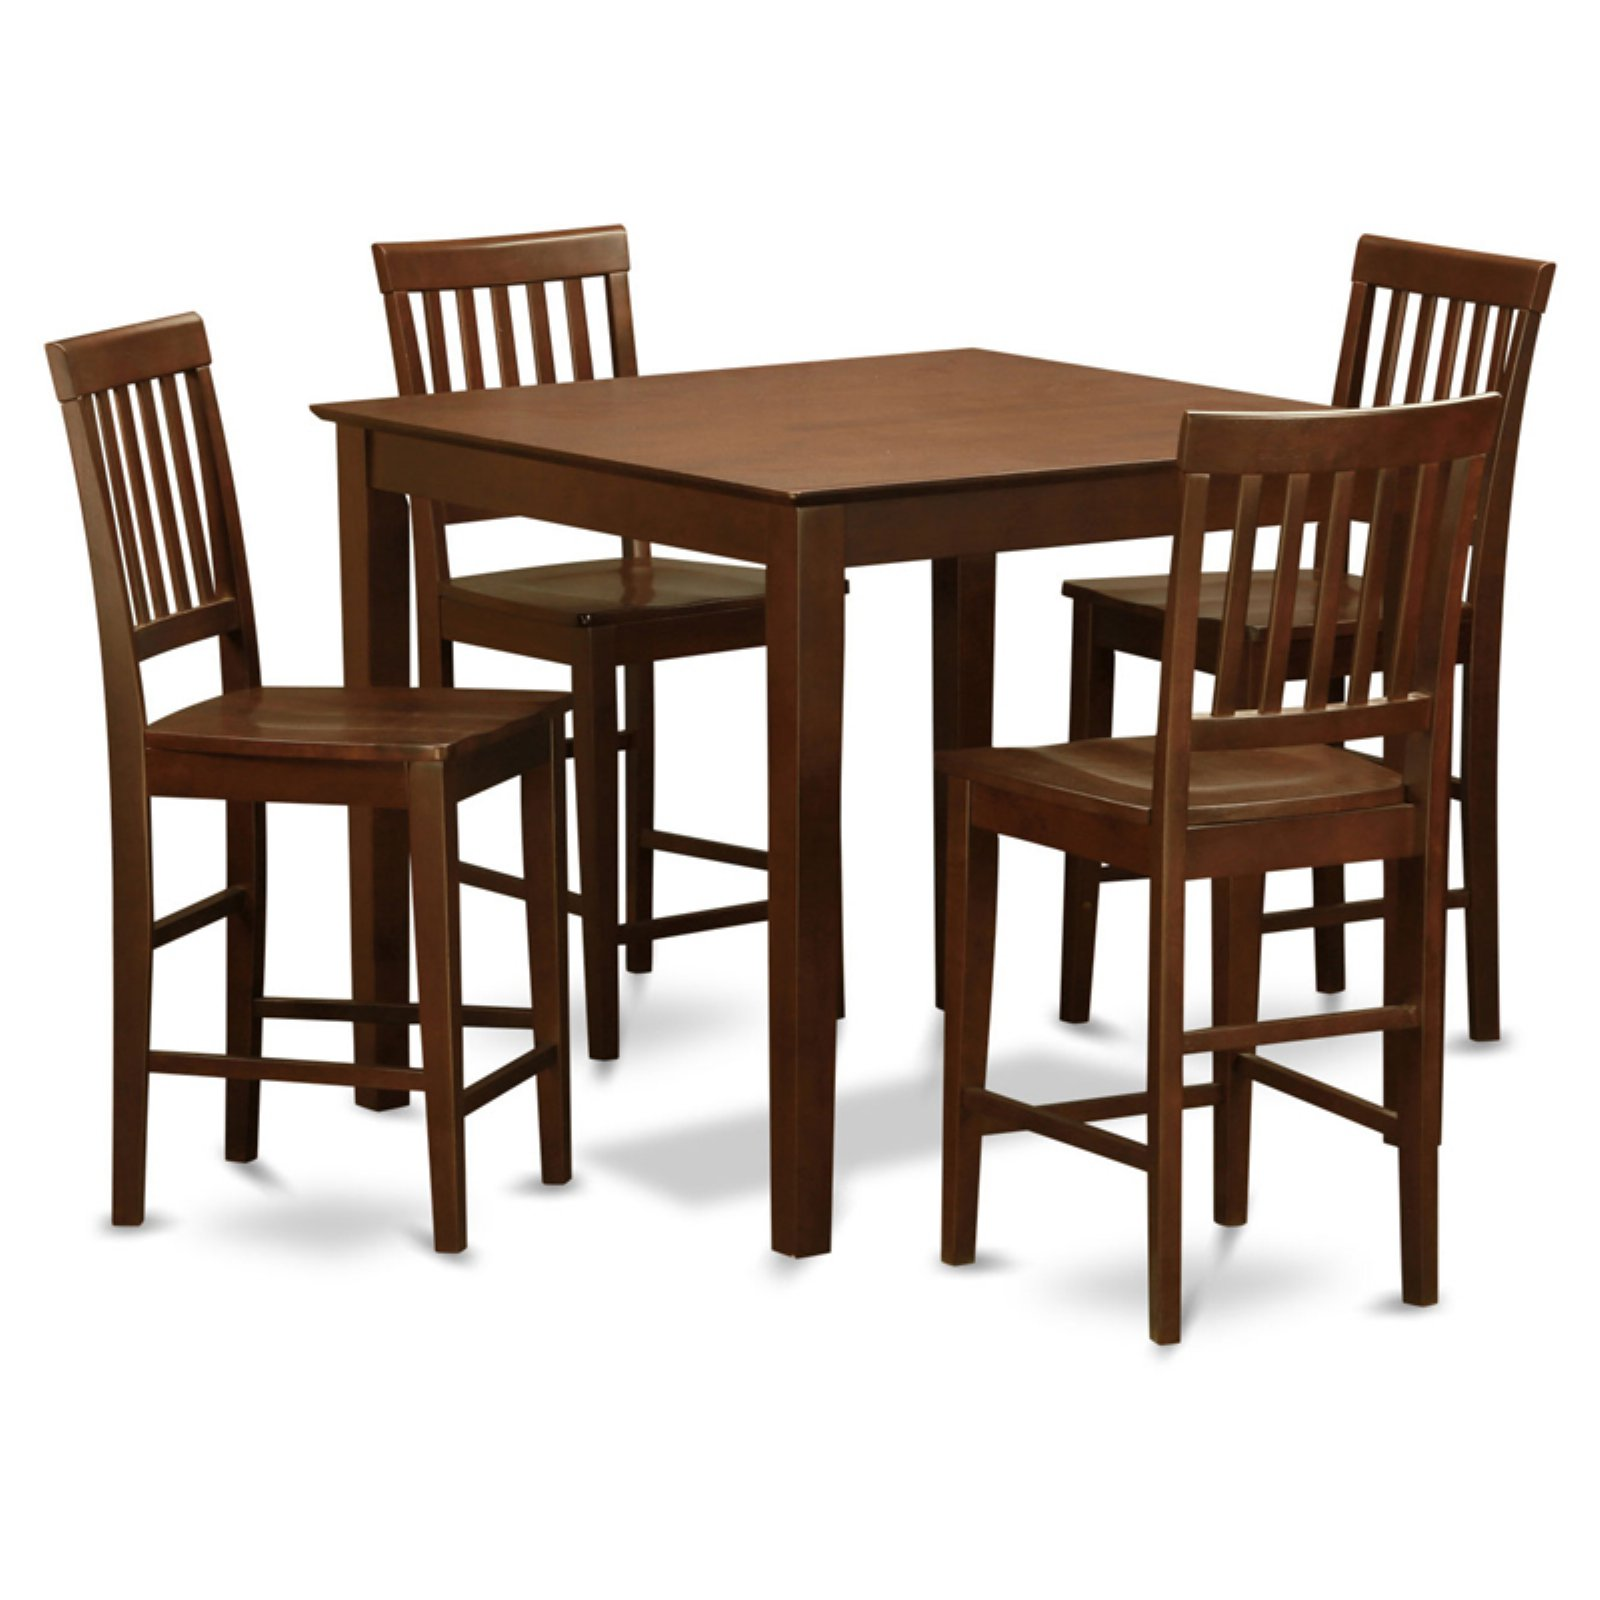 East West Furniture East West 3 Piece Slat Back Dining Table Set